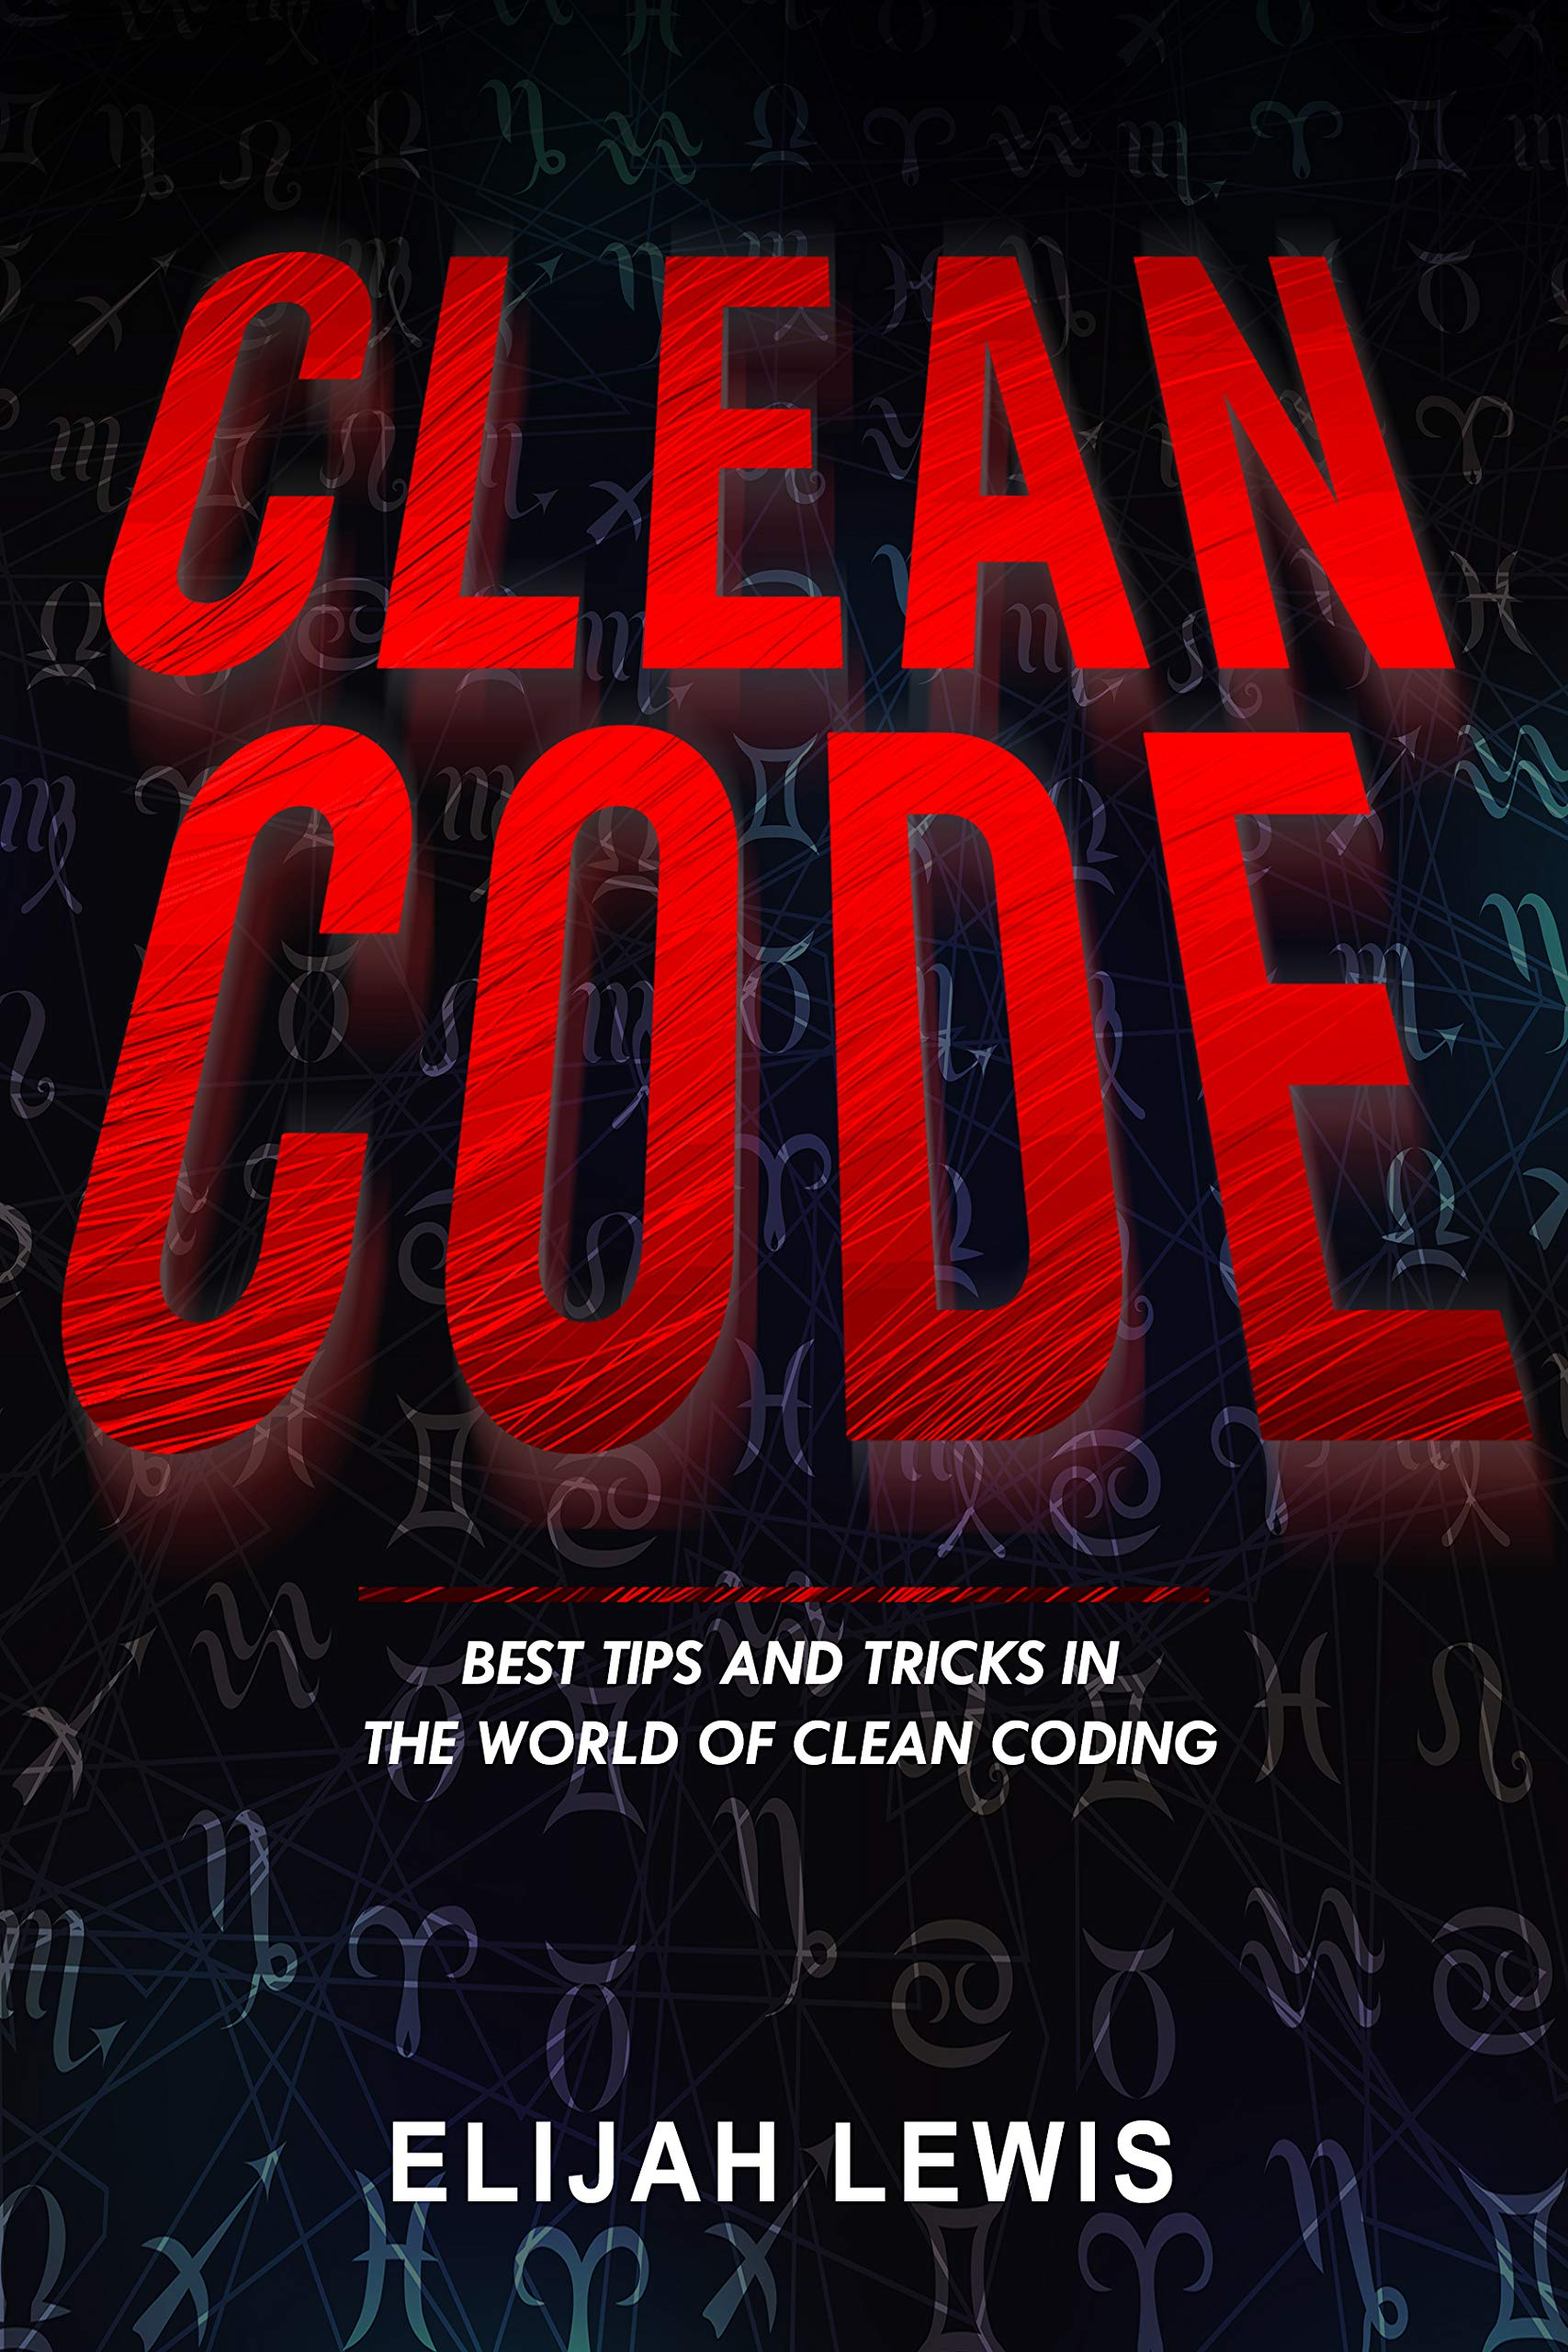 Download CLEAN CODE: Best Tips And Tricks In The World Of Clean Coding (English Edition) 